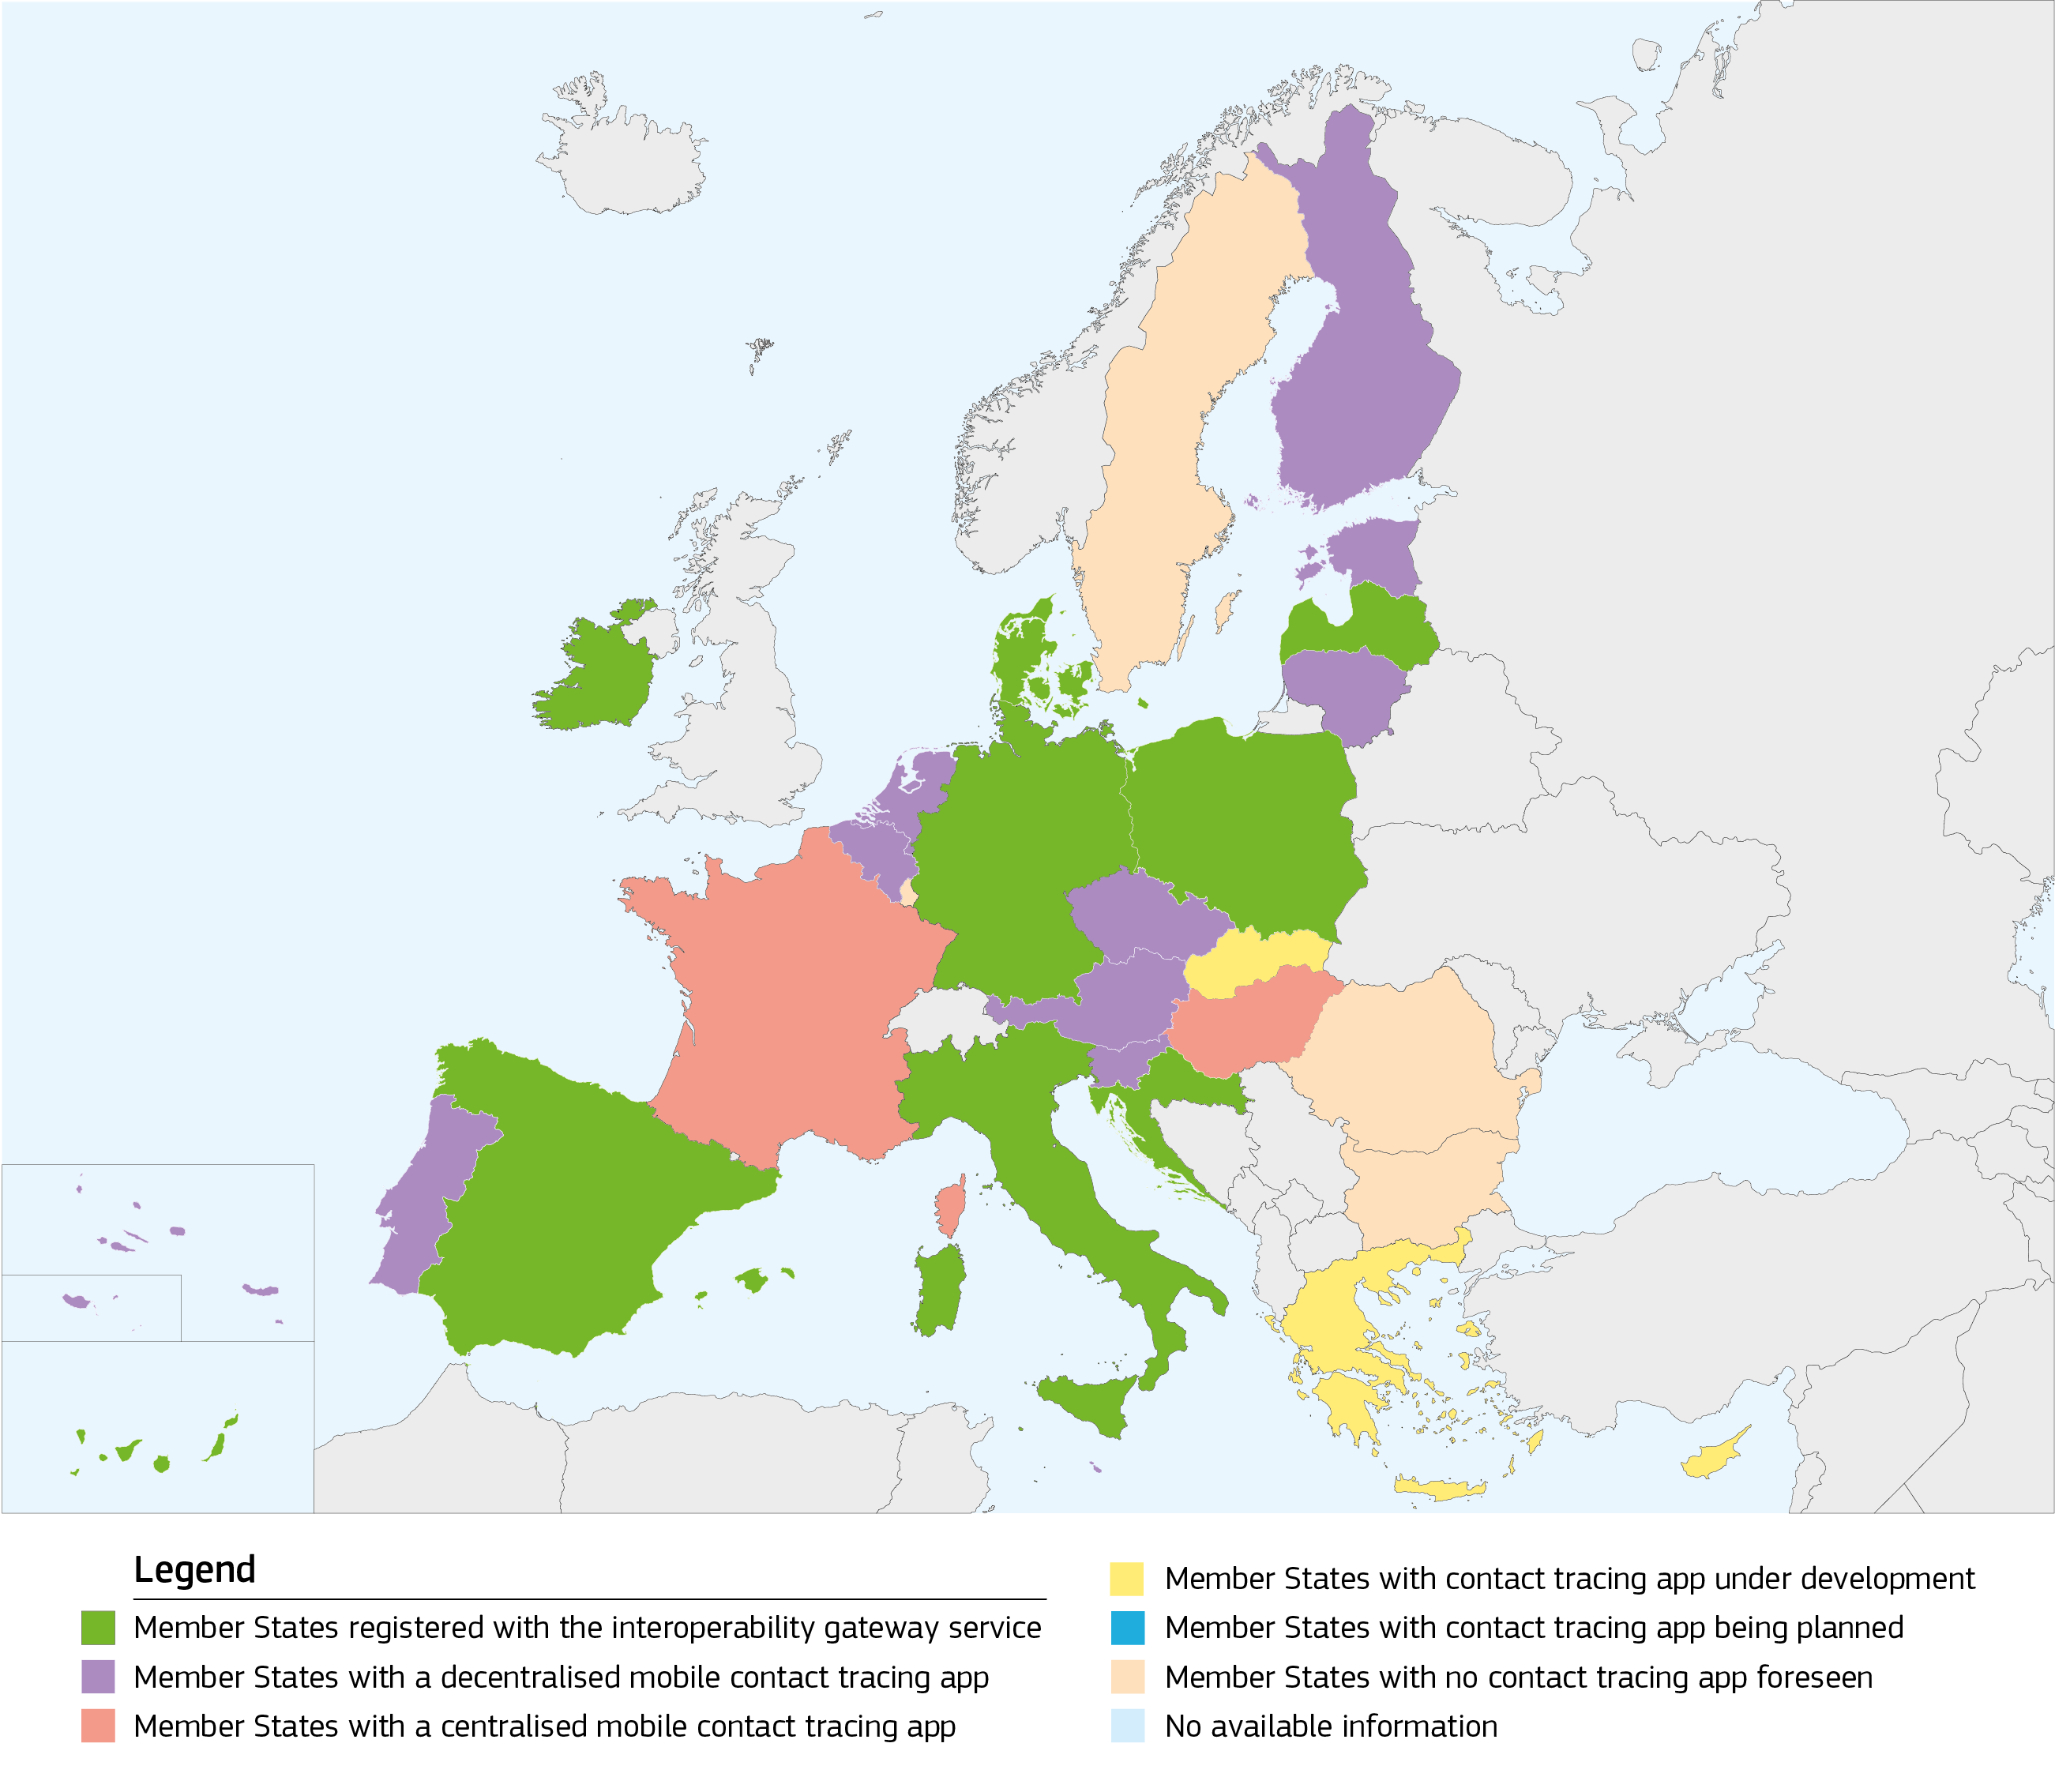 Colour coded map of Europe showing interoperable apps